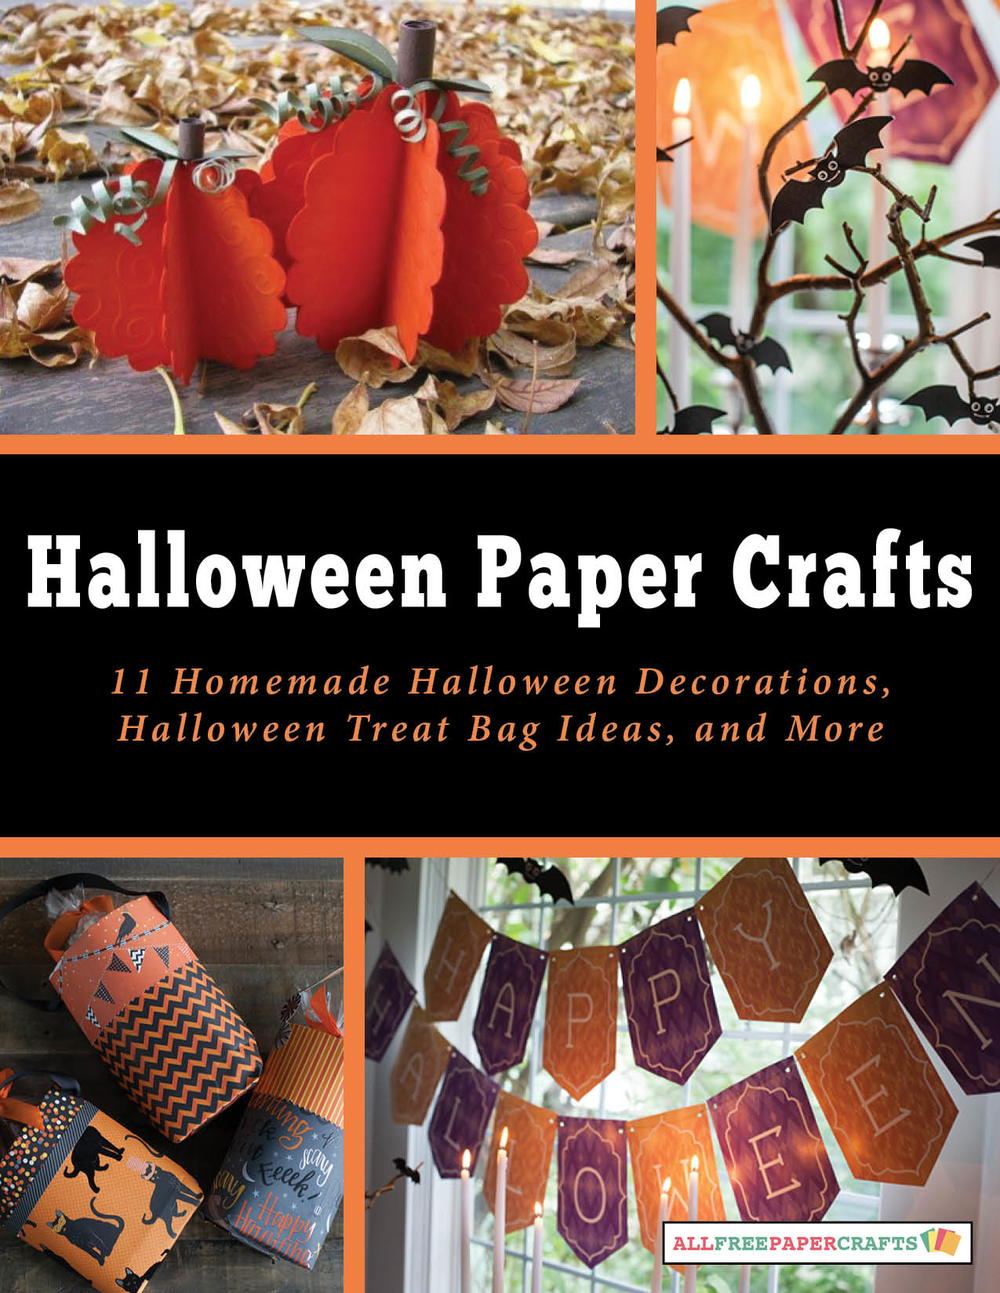 Halloween party ideas 22 halloween paper crafts halloween paper crafts 11 homemade halloween decorations halloween treat bag ideas and more fandeluxe PDF